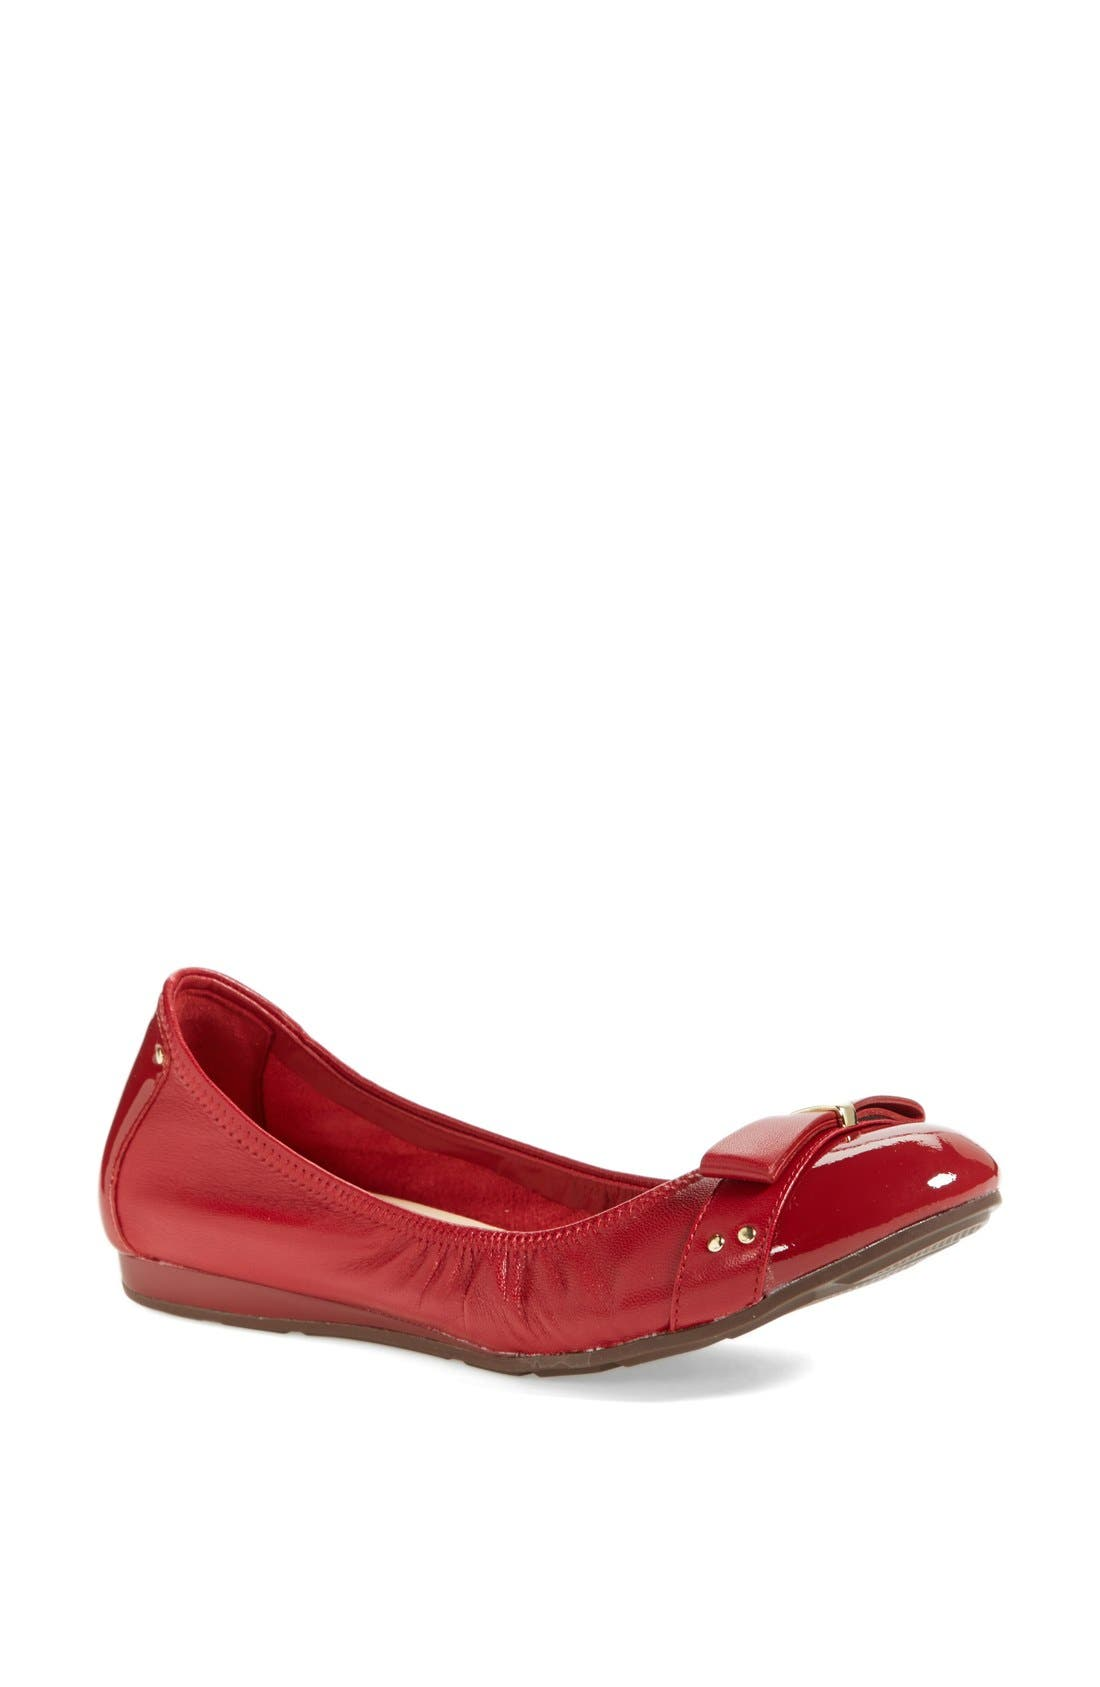 Alternate Image 1 Selected - Cole Haan 'Air Monica' Ballet Flat